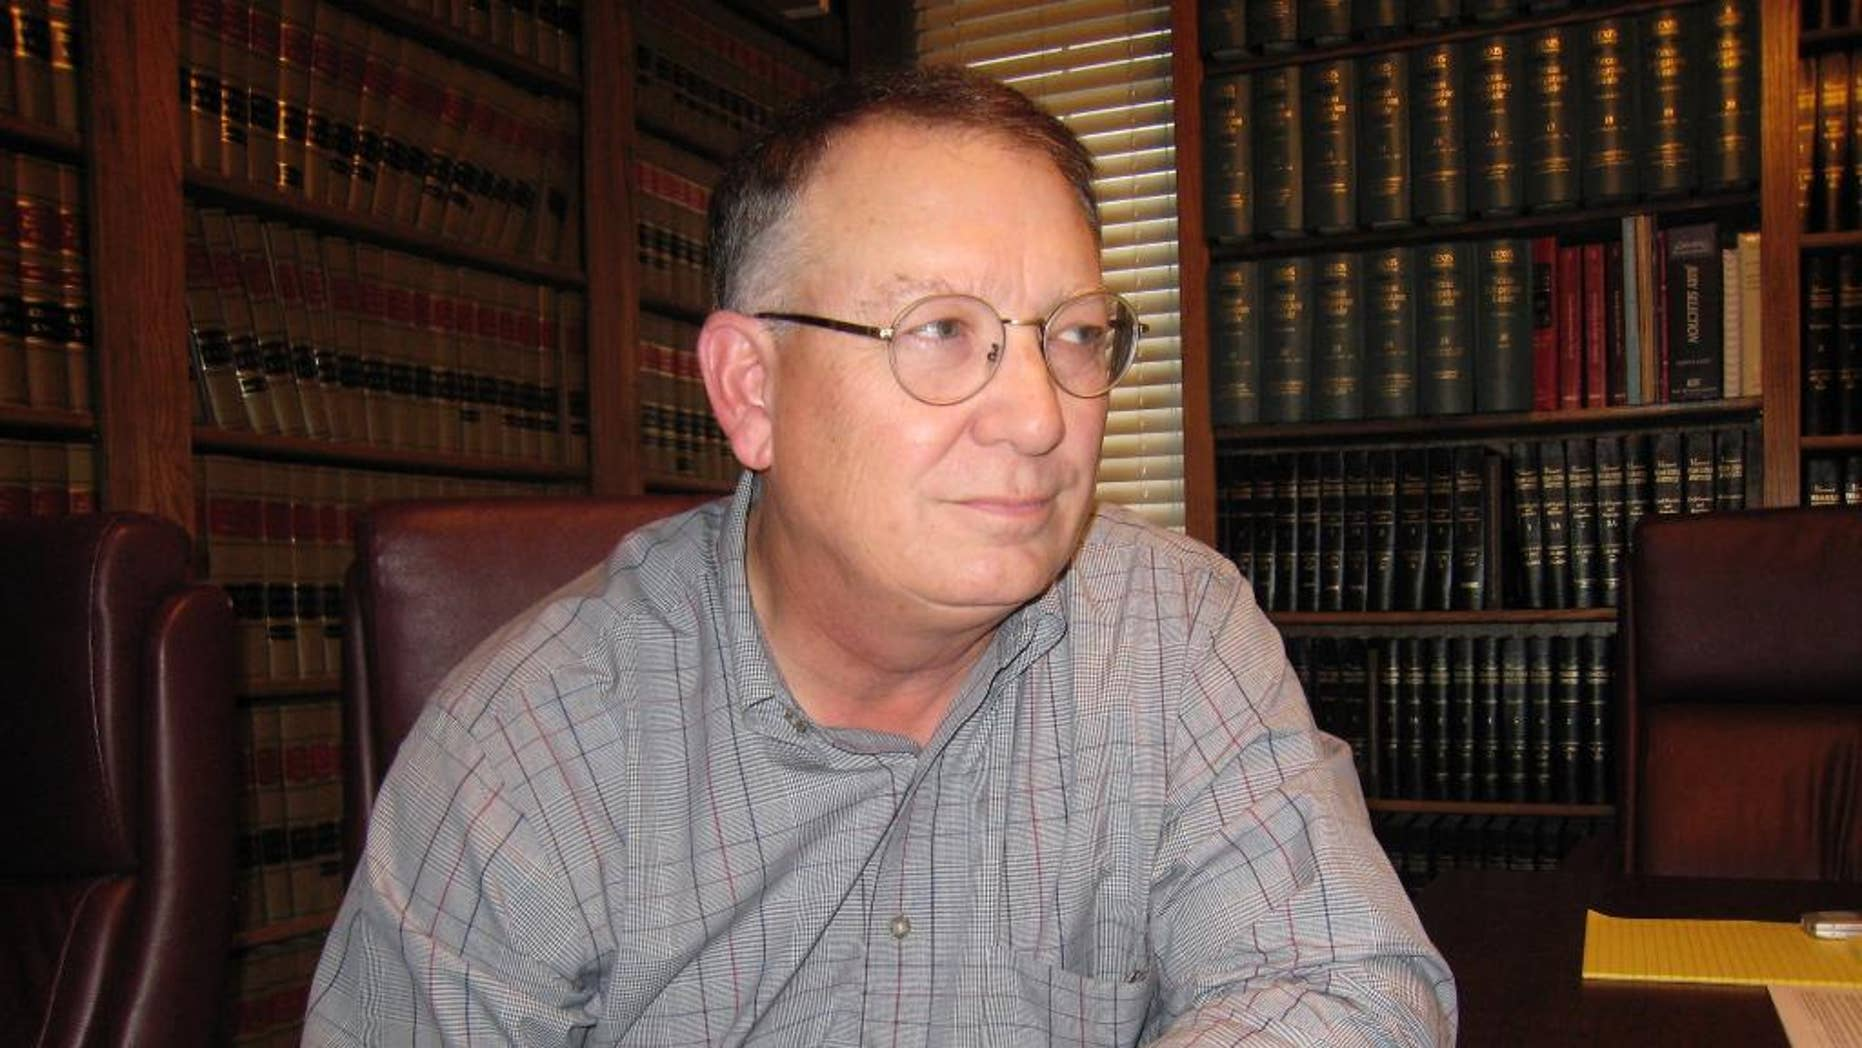 FILE - In this Oct. 13, 2009, file photo, John Jackson, the prosecutor in the 1992 trial of Cameron Todd Willingham, poses for a photo in Austin, Texas. Jackson, who handled the case of Willingham who was executed for the fire deaths of his three daughters has been formally accused of misconduct over allegations that he concealed evidence during the murder trial. He declined comment Wednesday, March 18, 2015, on the accusations against him and referred questions to an attorney. (AP Photo/Austin American-Statesman, W. Gardner Selby, File)